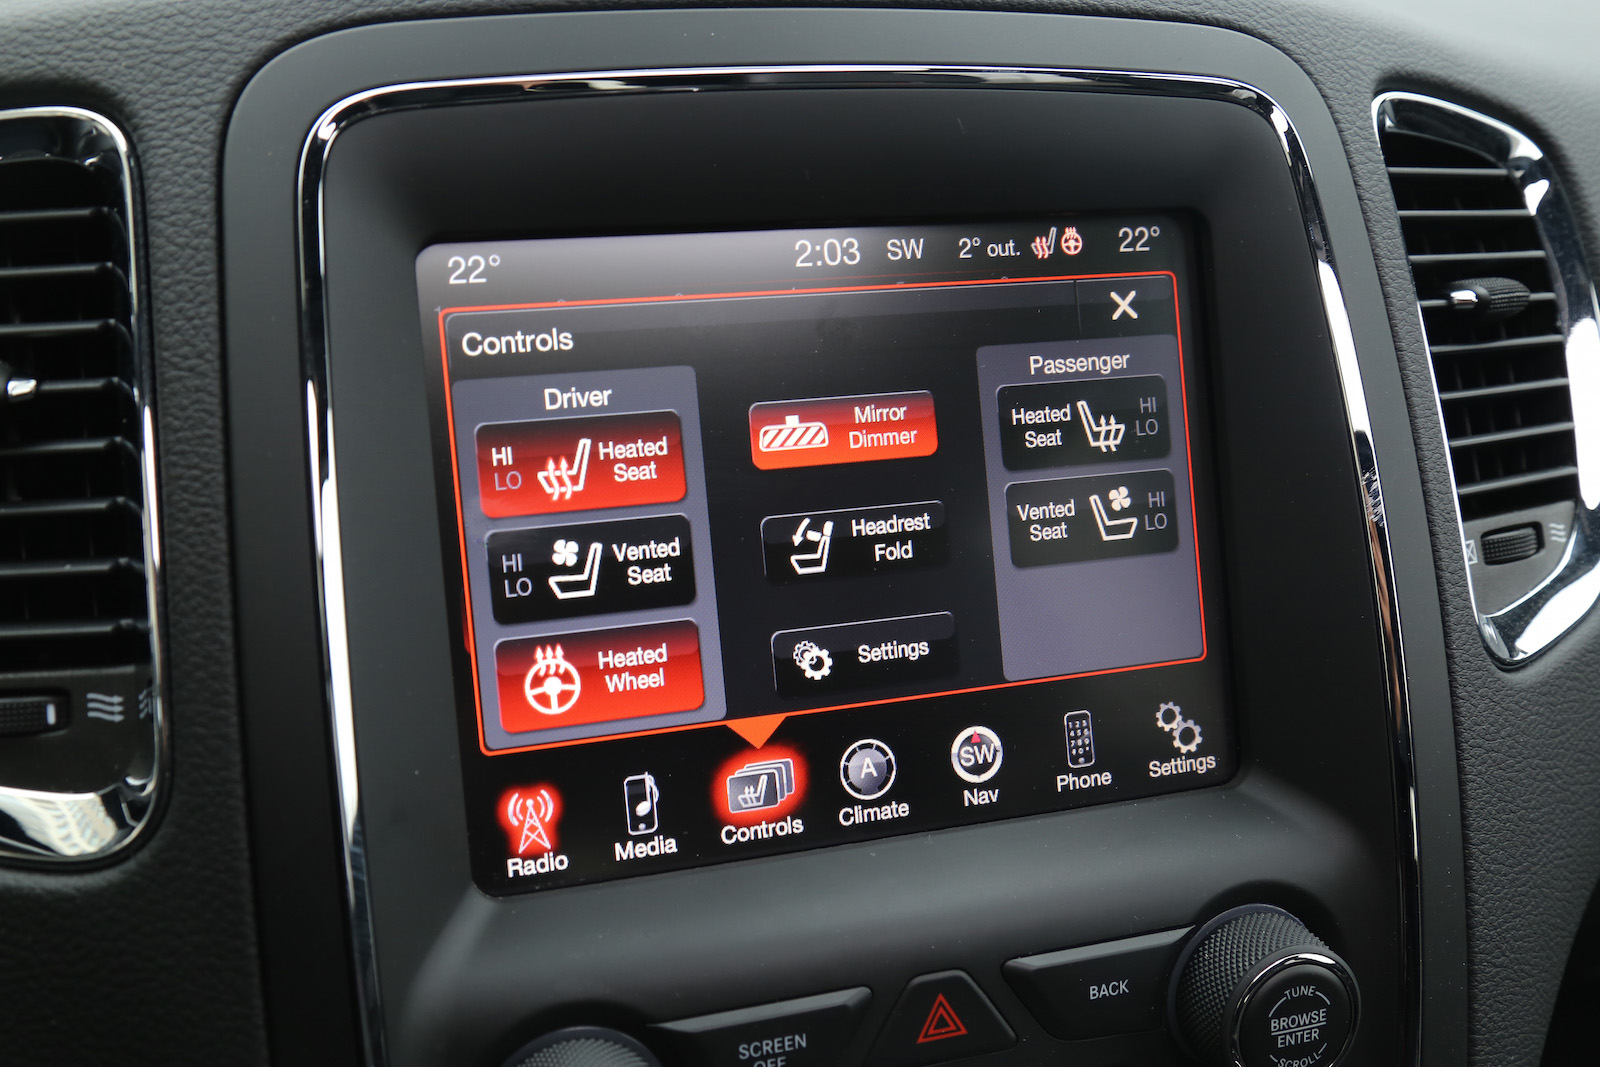 Dodge Durango Rt Heated Controls